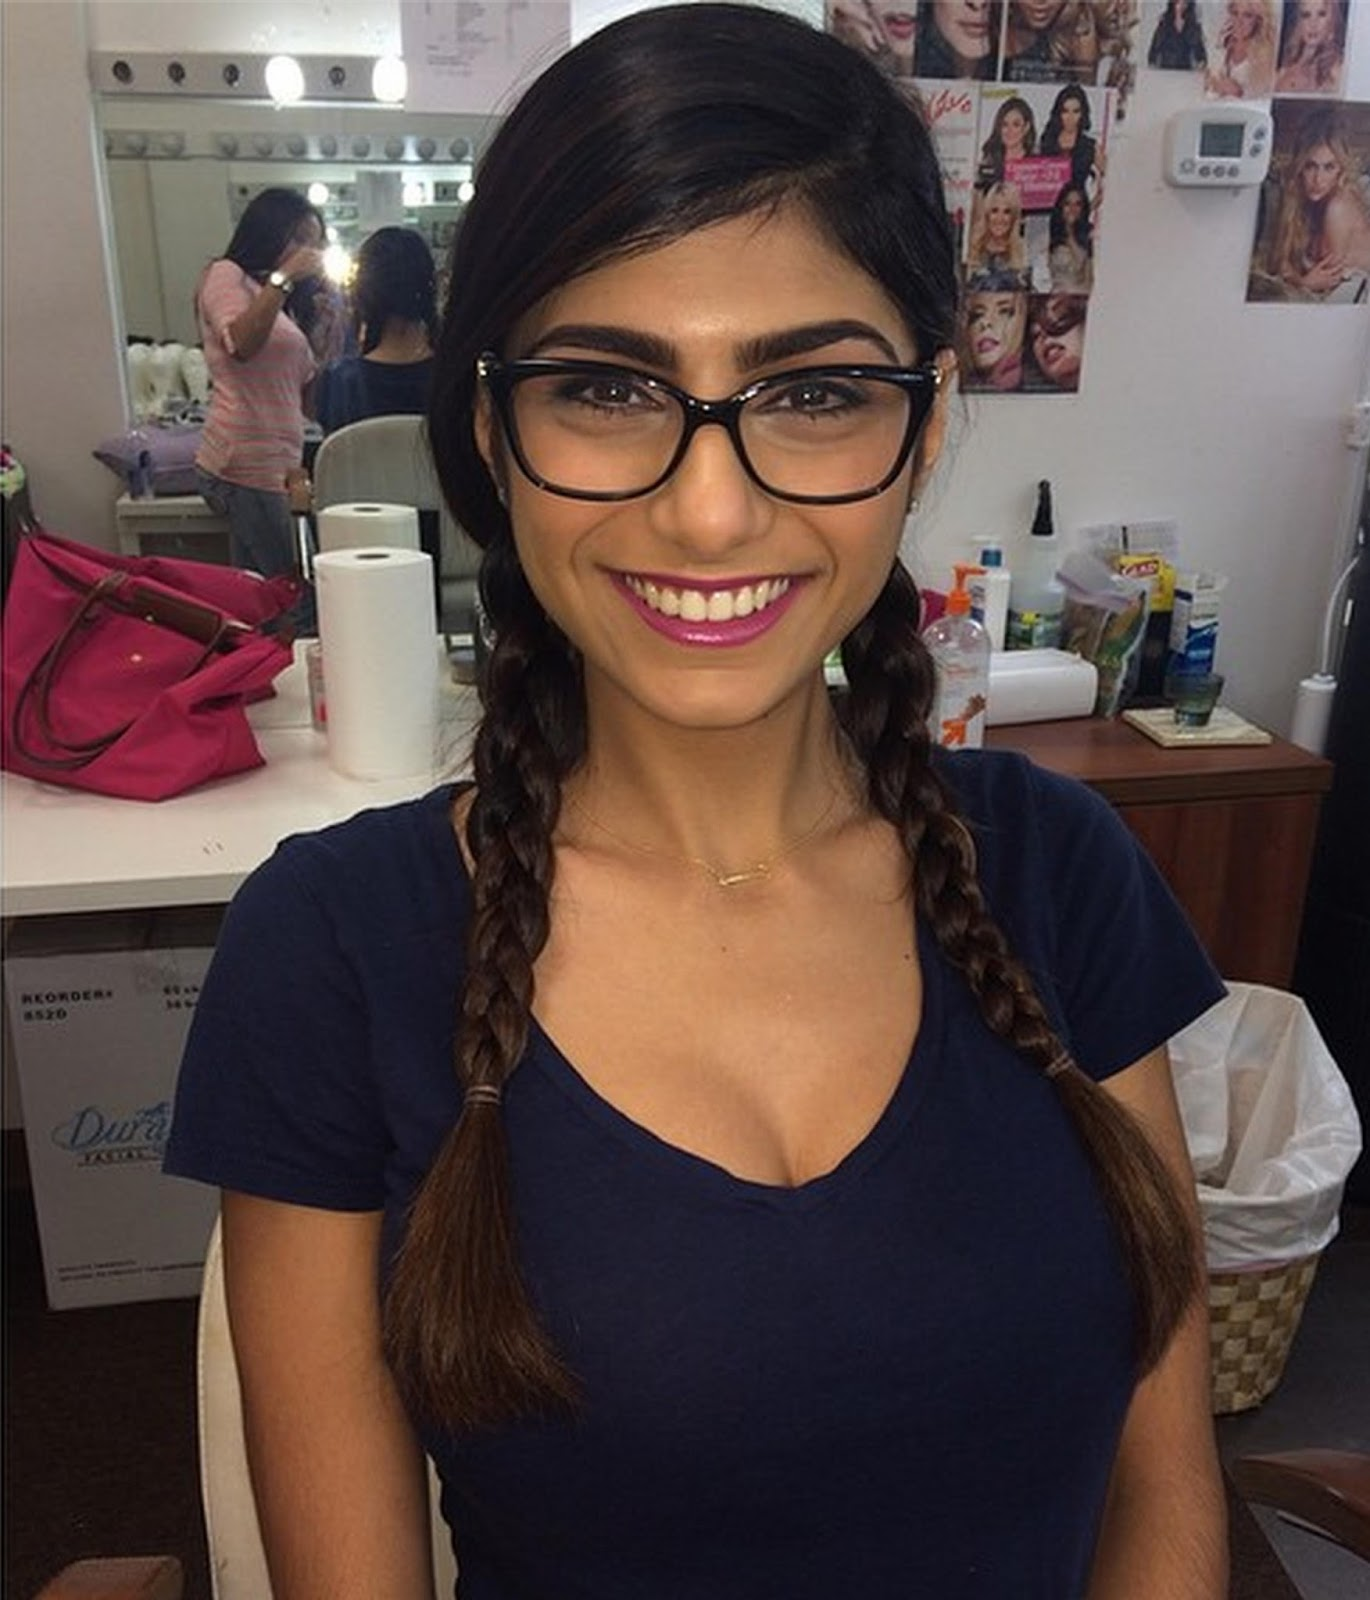 mia khalifa latest pic